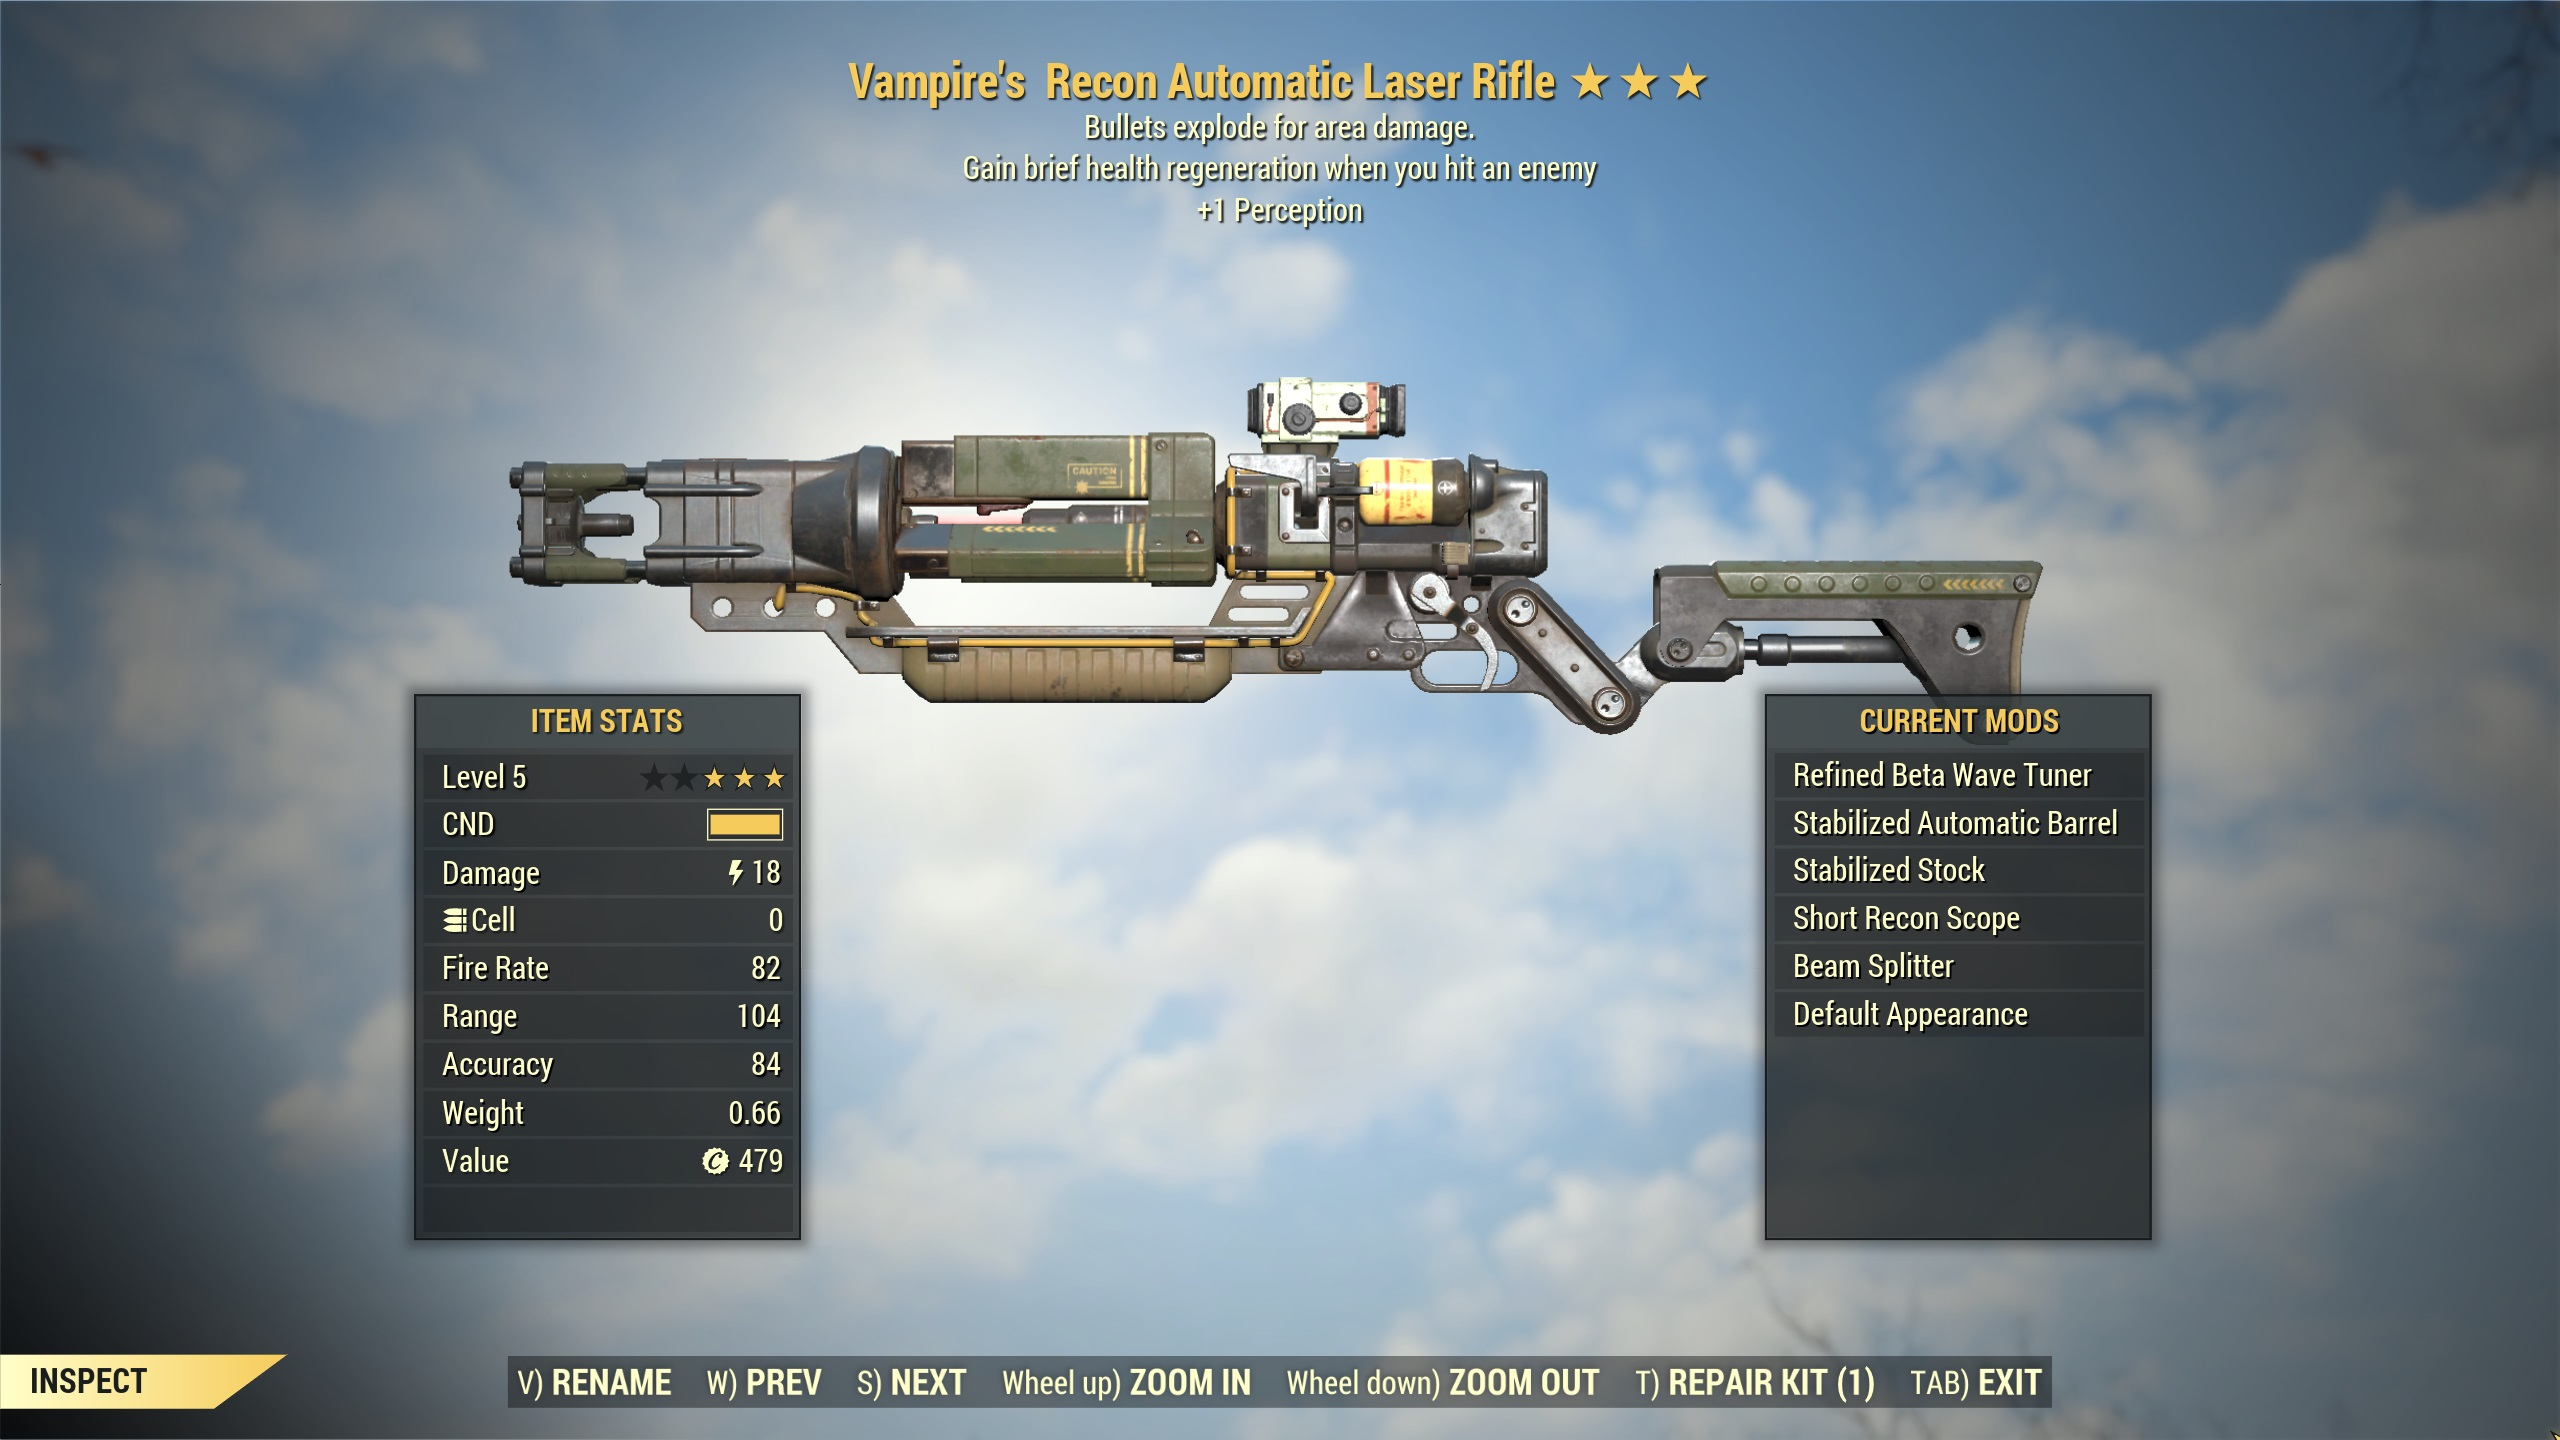 [LVL5] Vampires Explosive Laser Rifle | FAST DELIVERY |